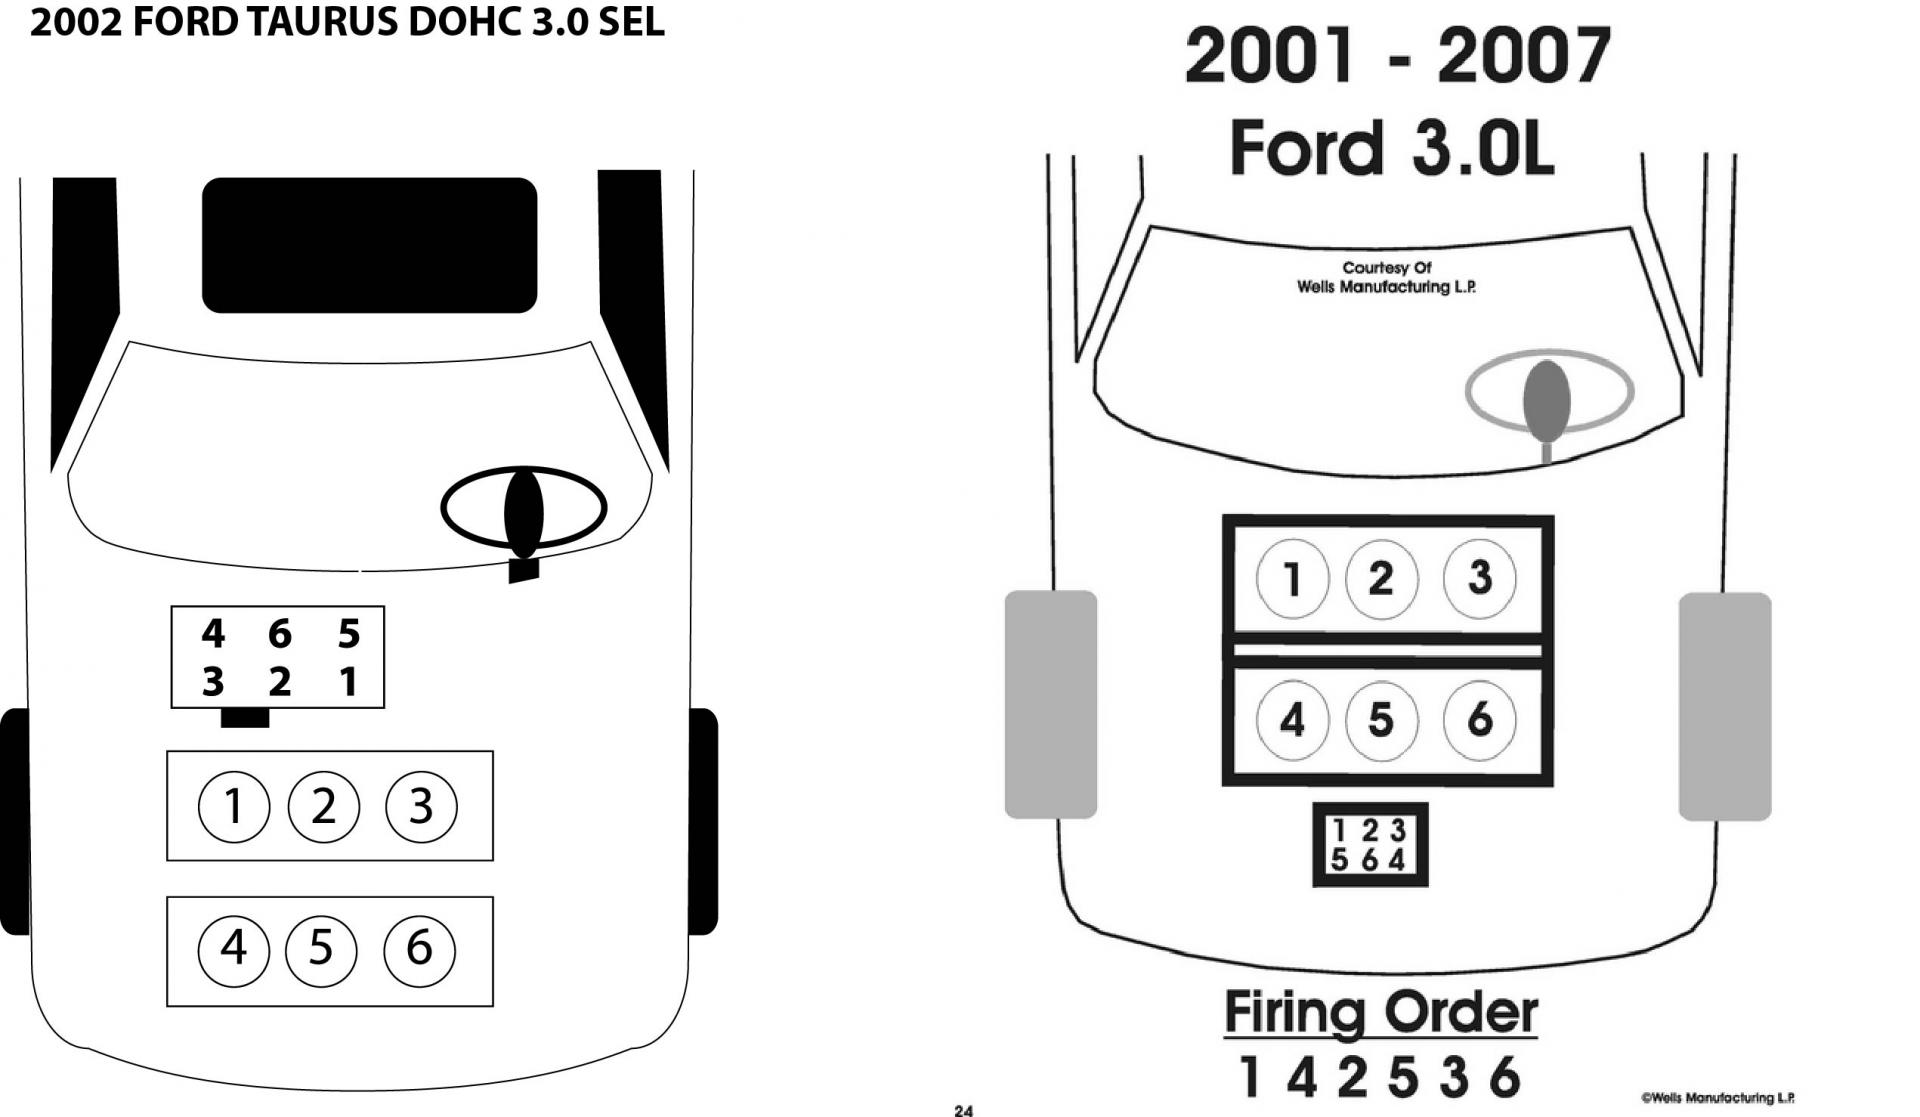 Mercruiser 3.0 Firing Order Diagram